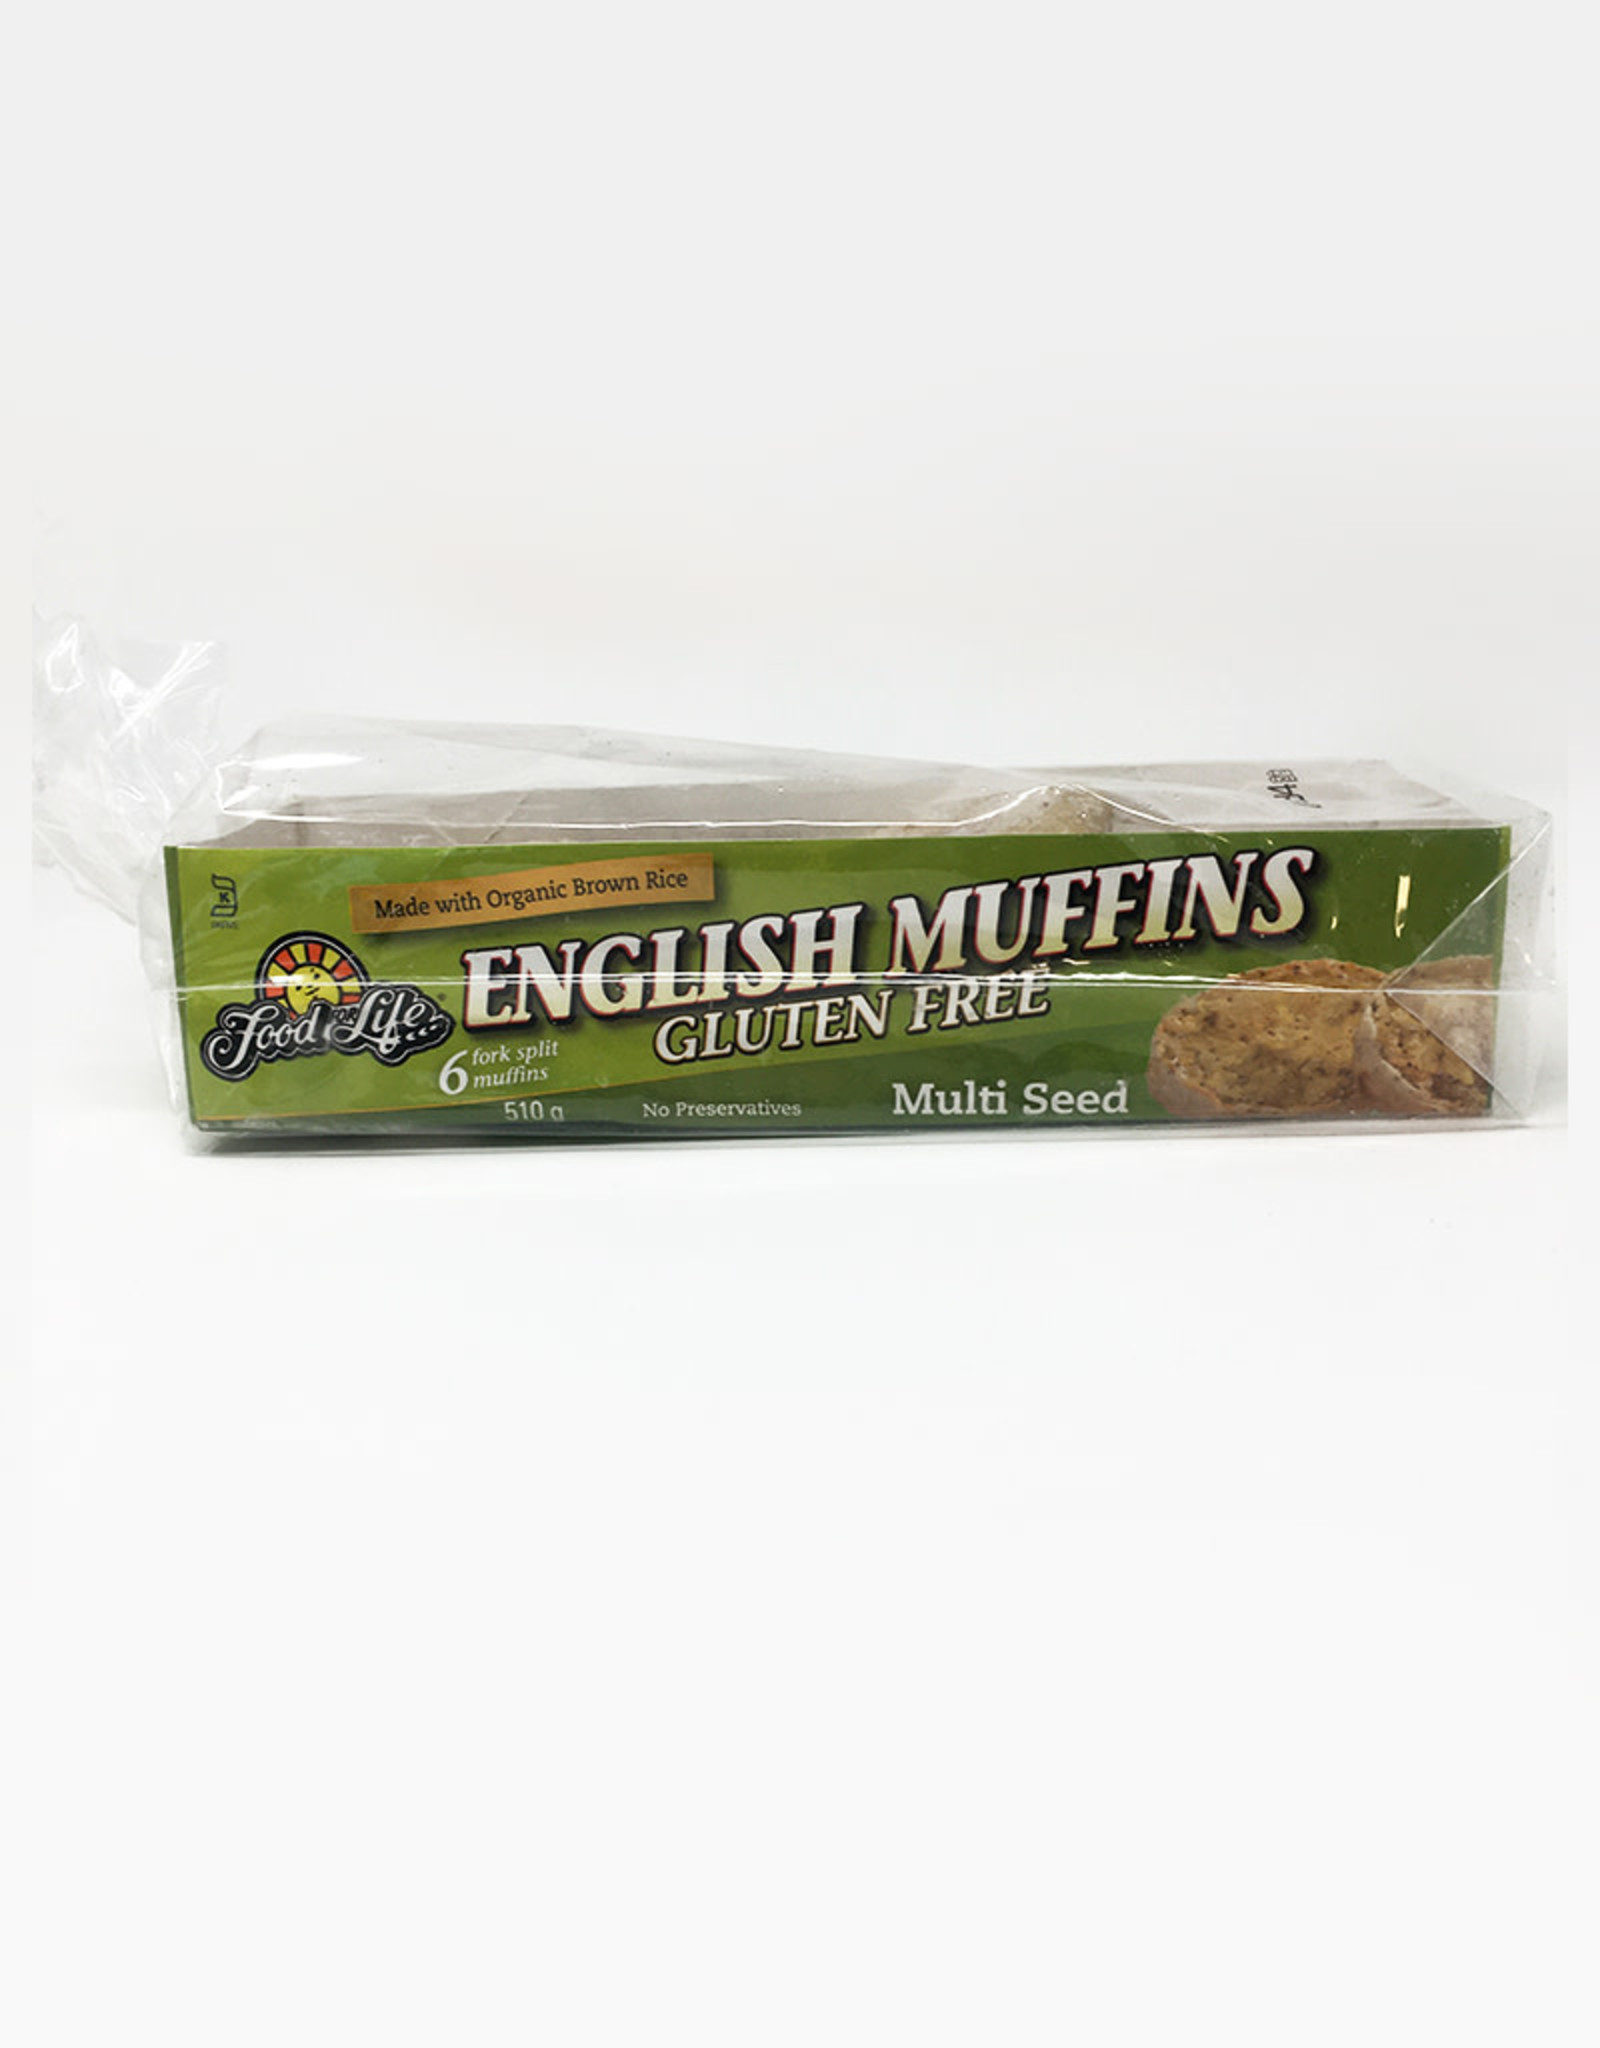 Food For Life Food For Life - Muffin Anglais, Multigrains Sans Gluten (510g)